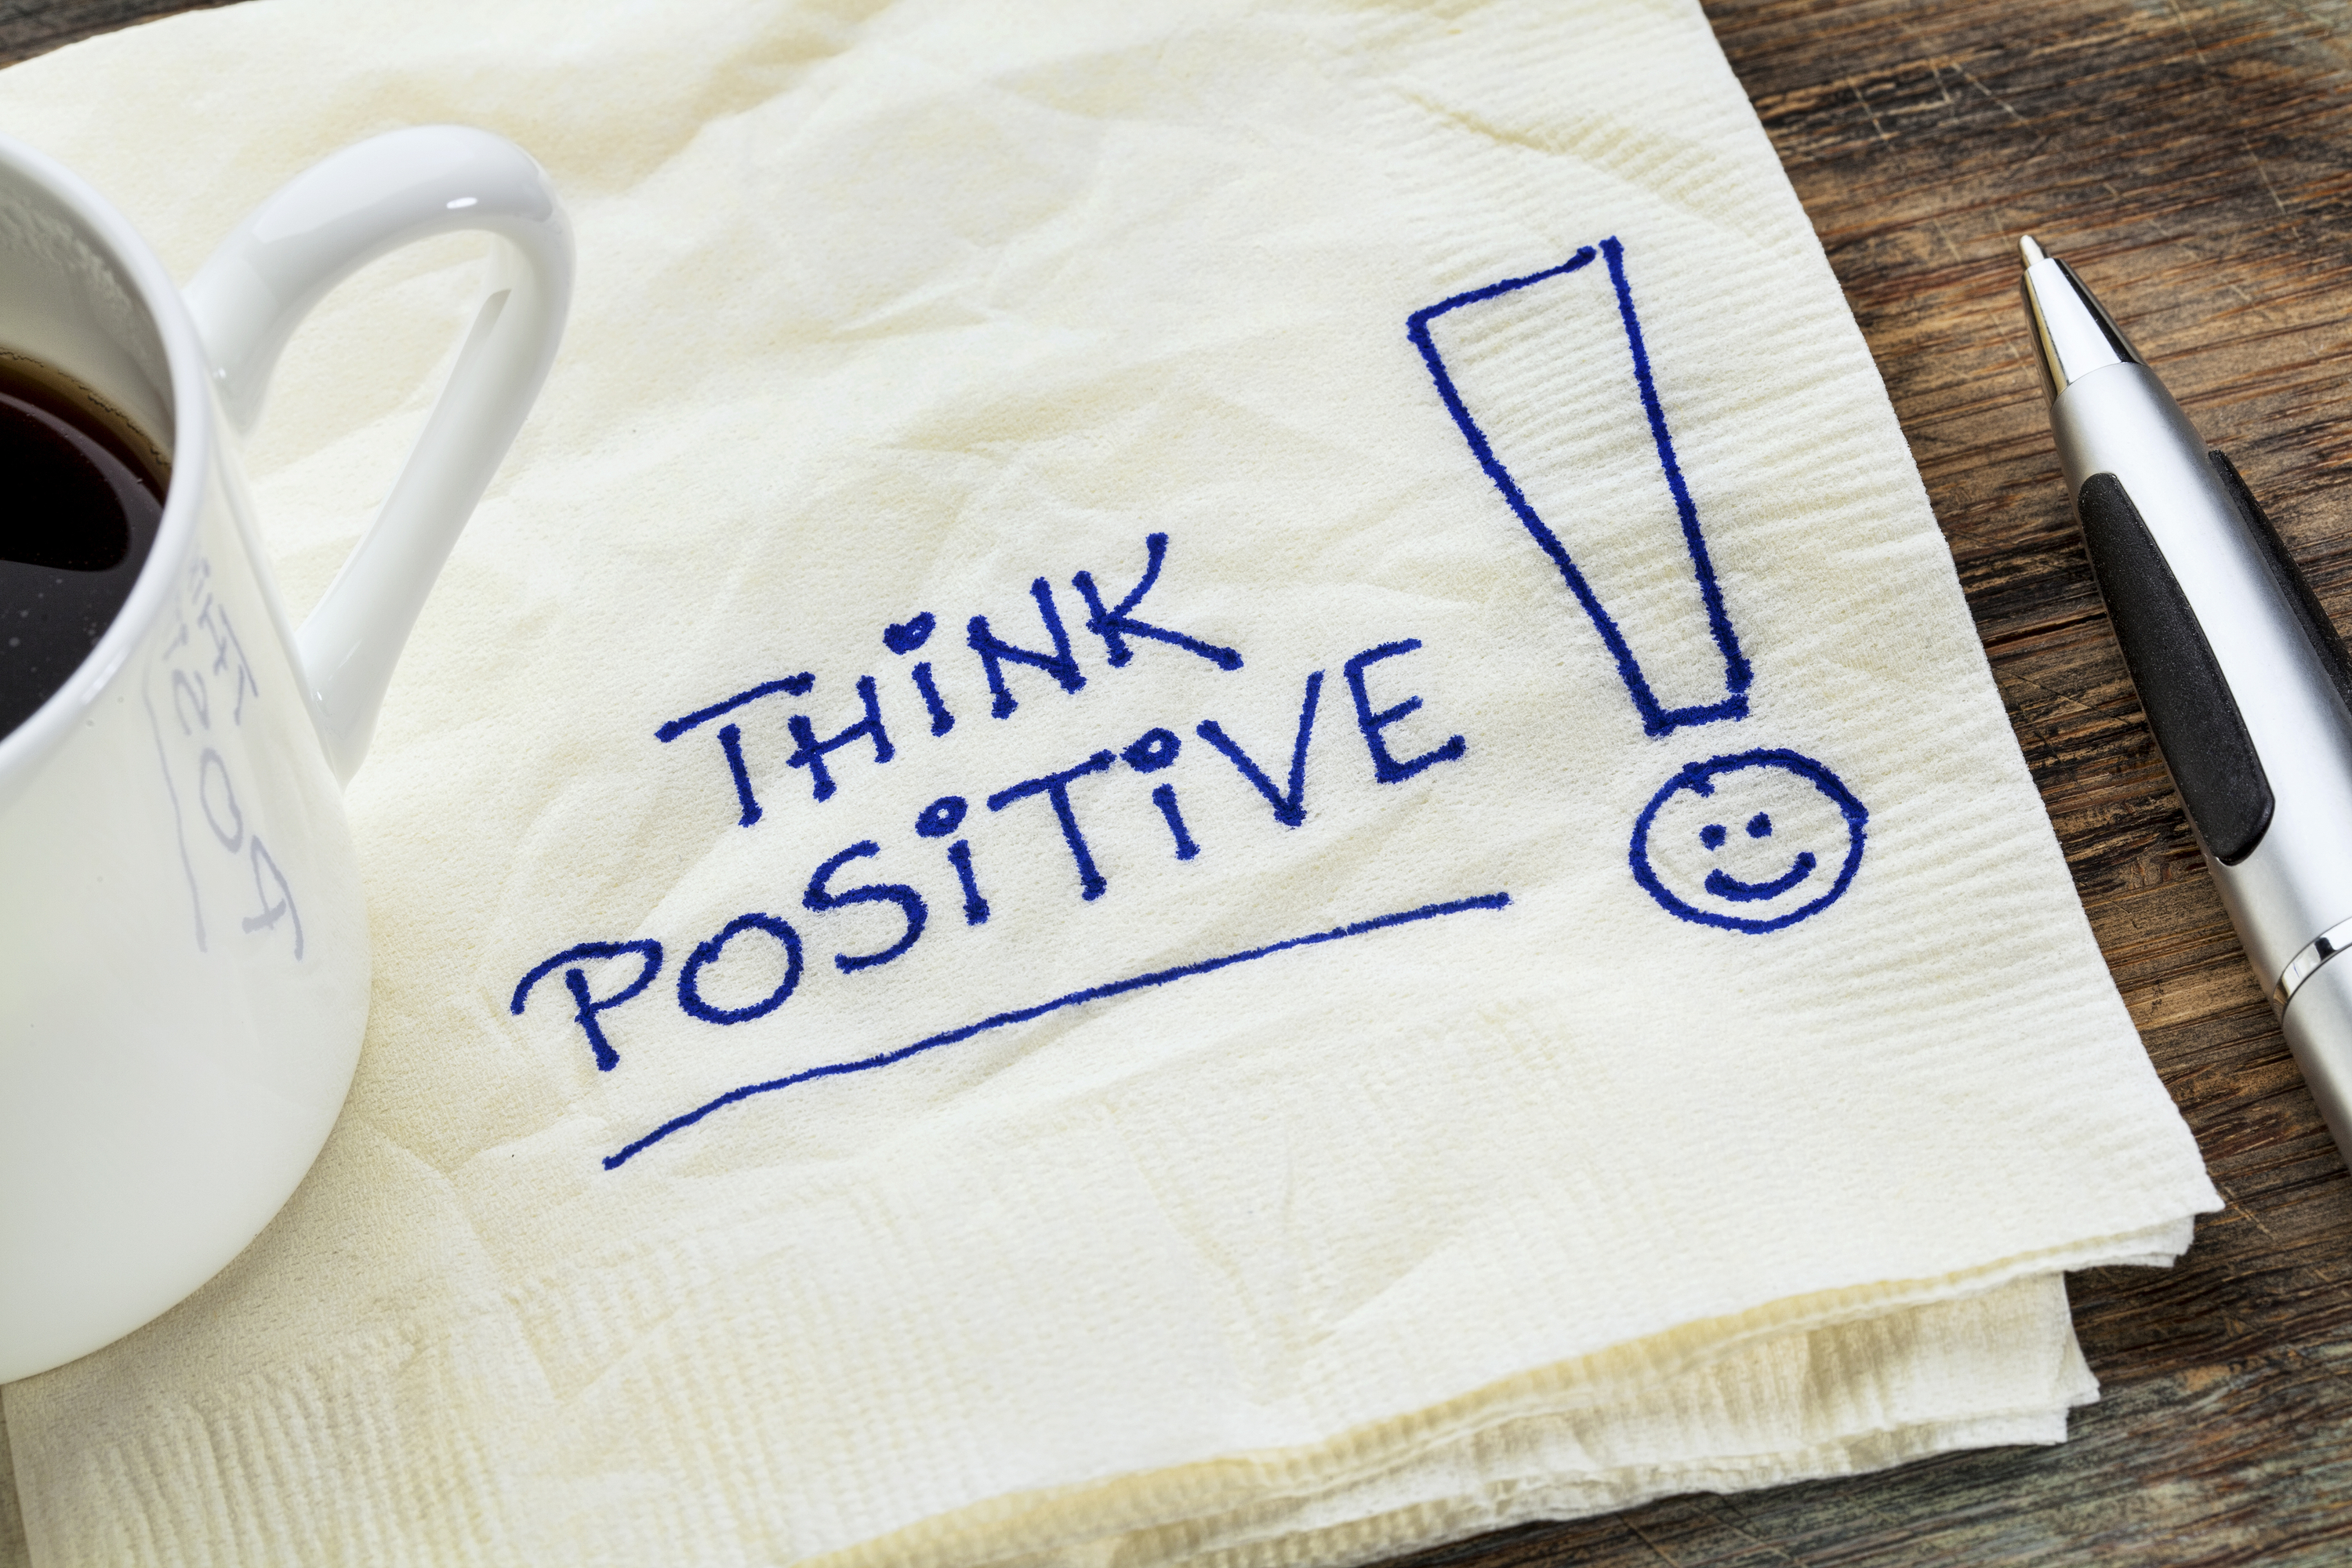 Finding positivity in life can be hard but you have to remember to think positive